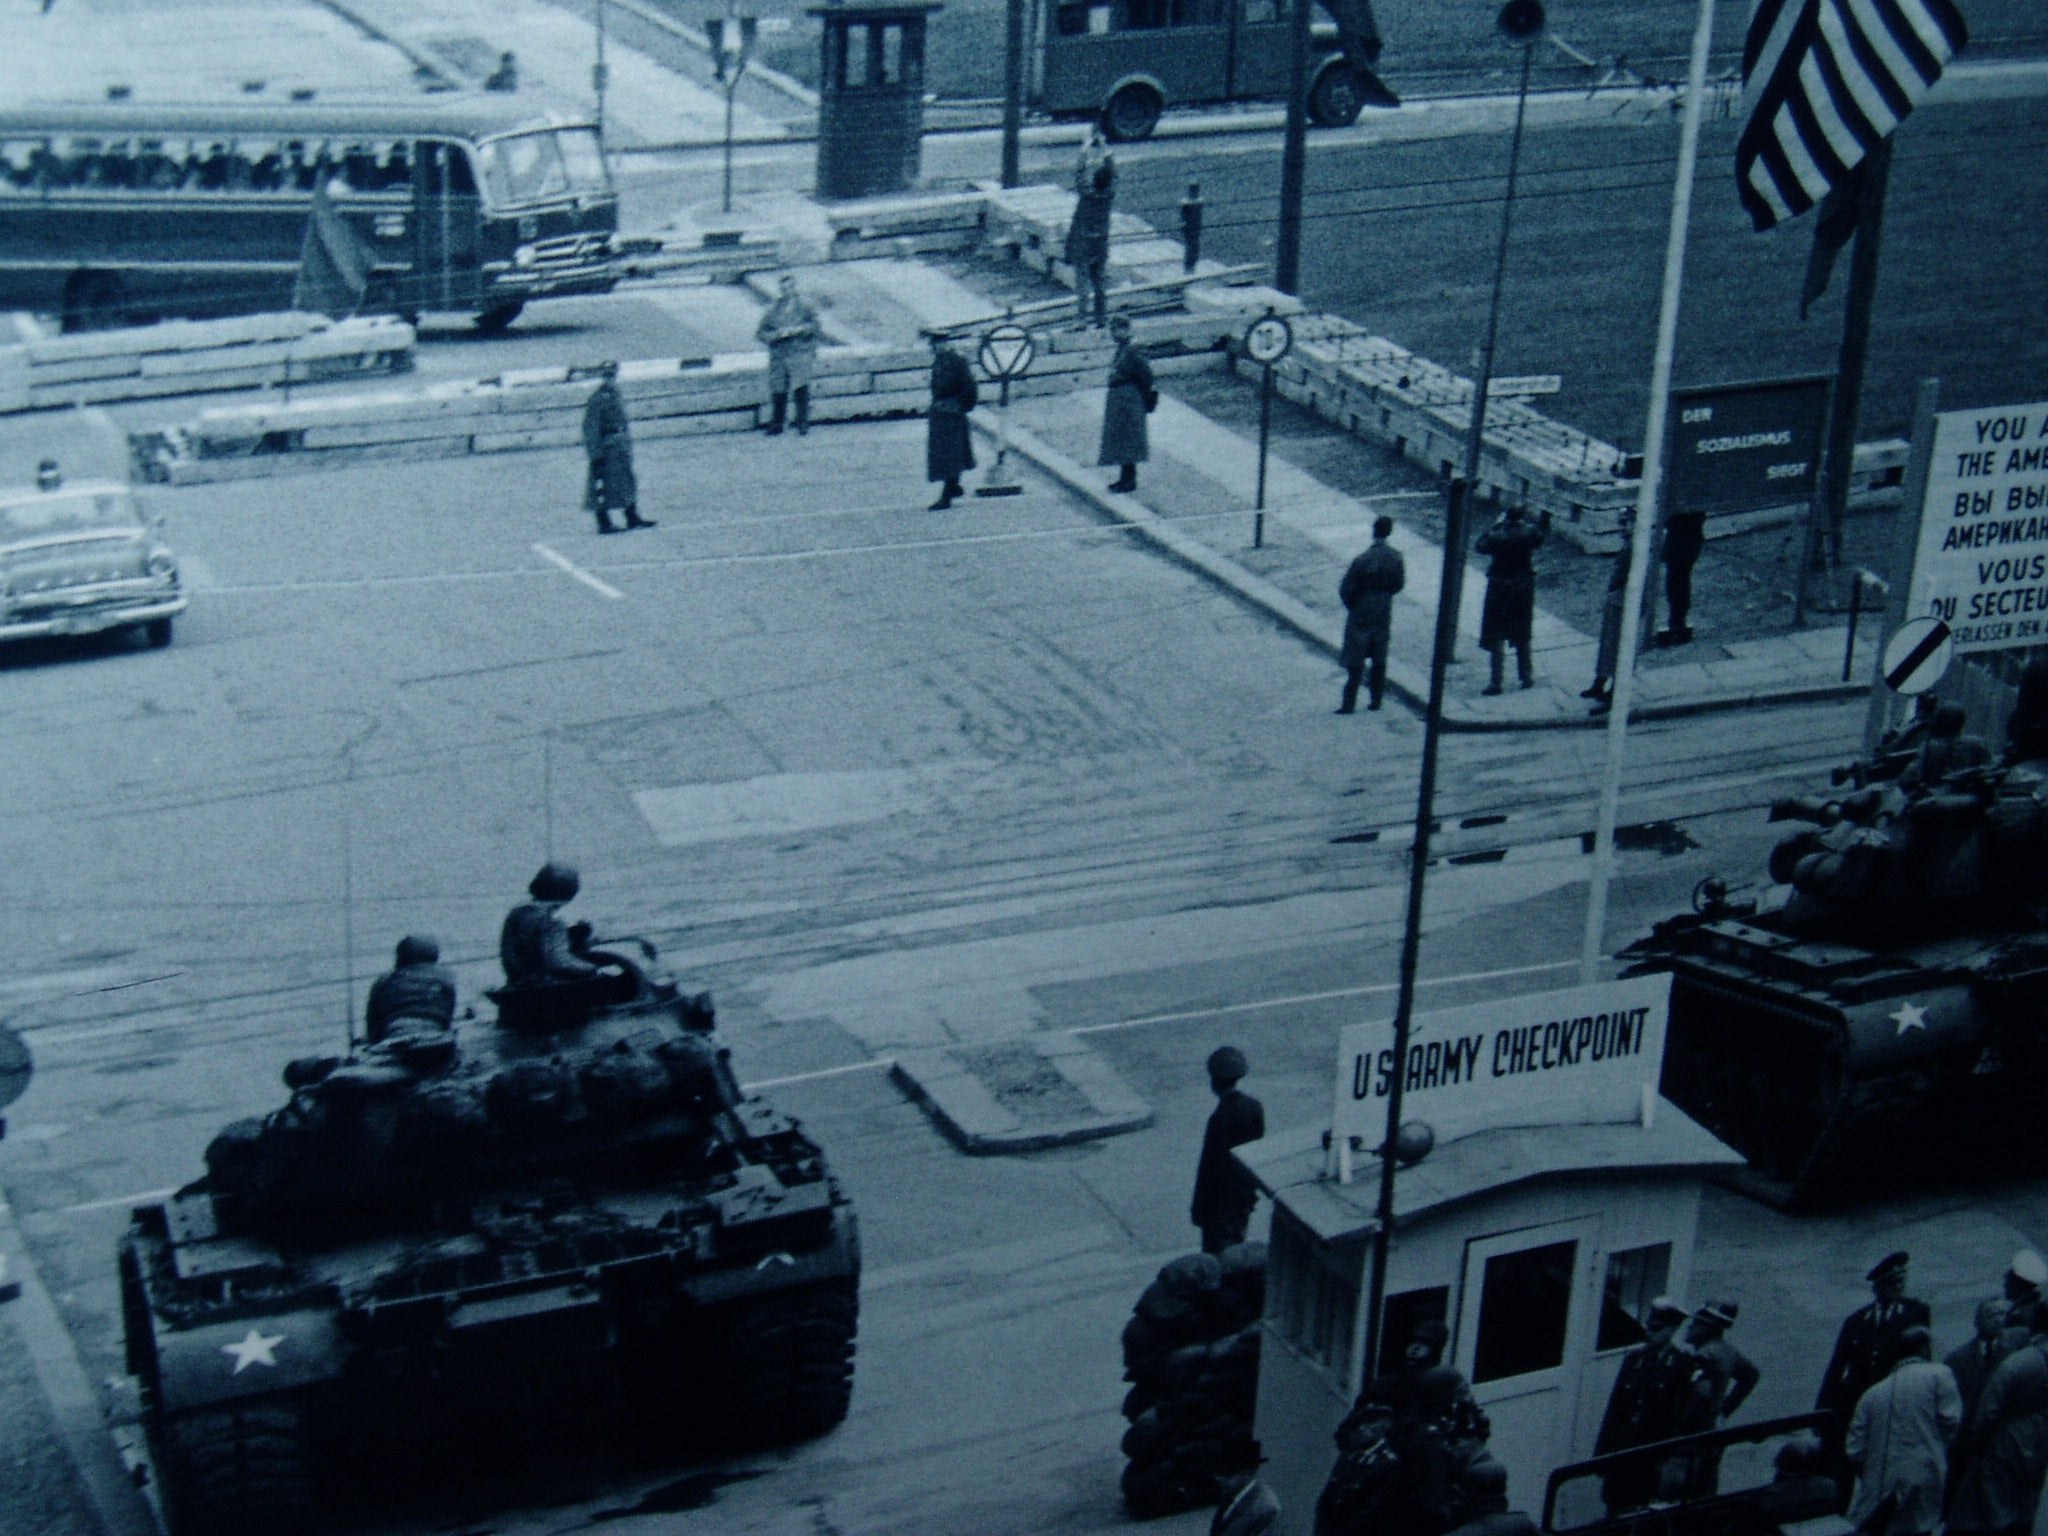 Mar en Checkpoint Charlie